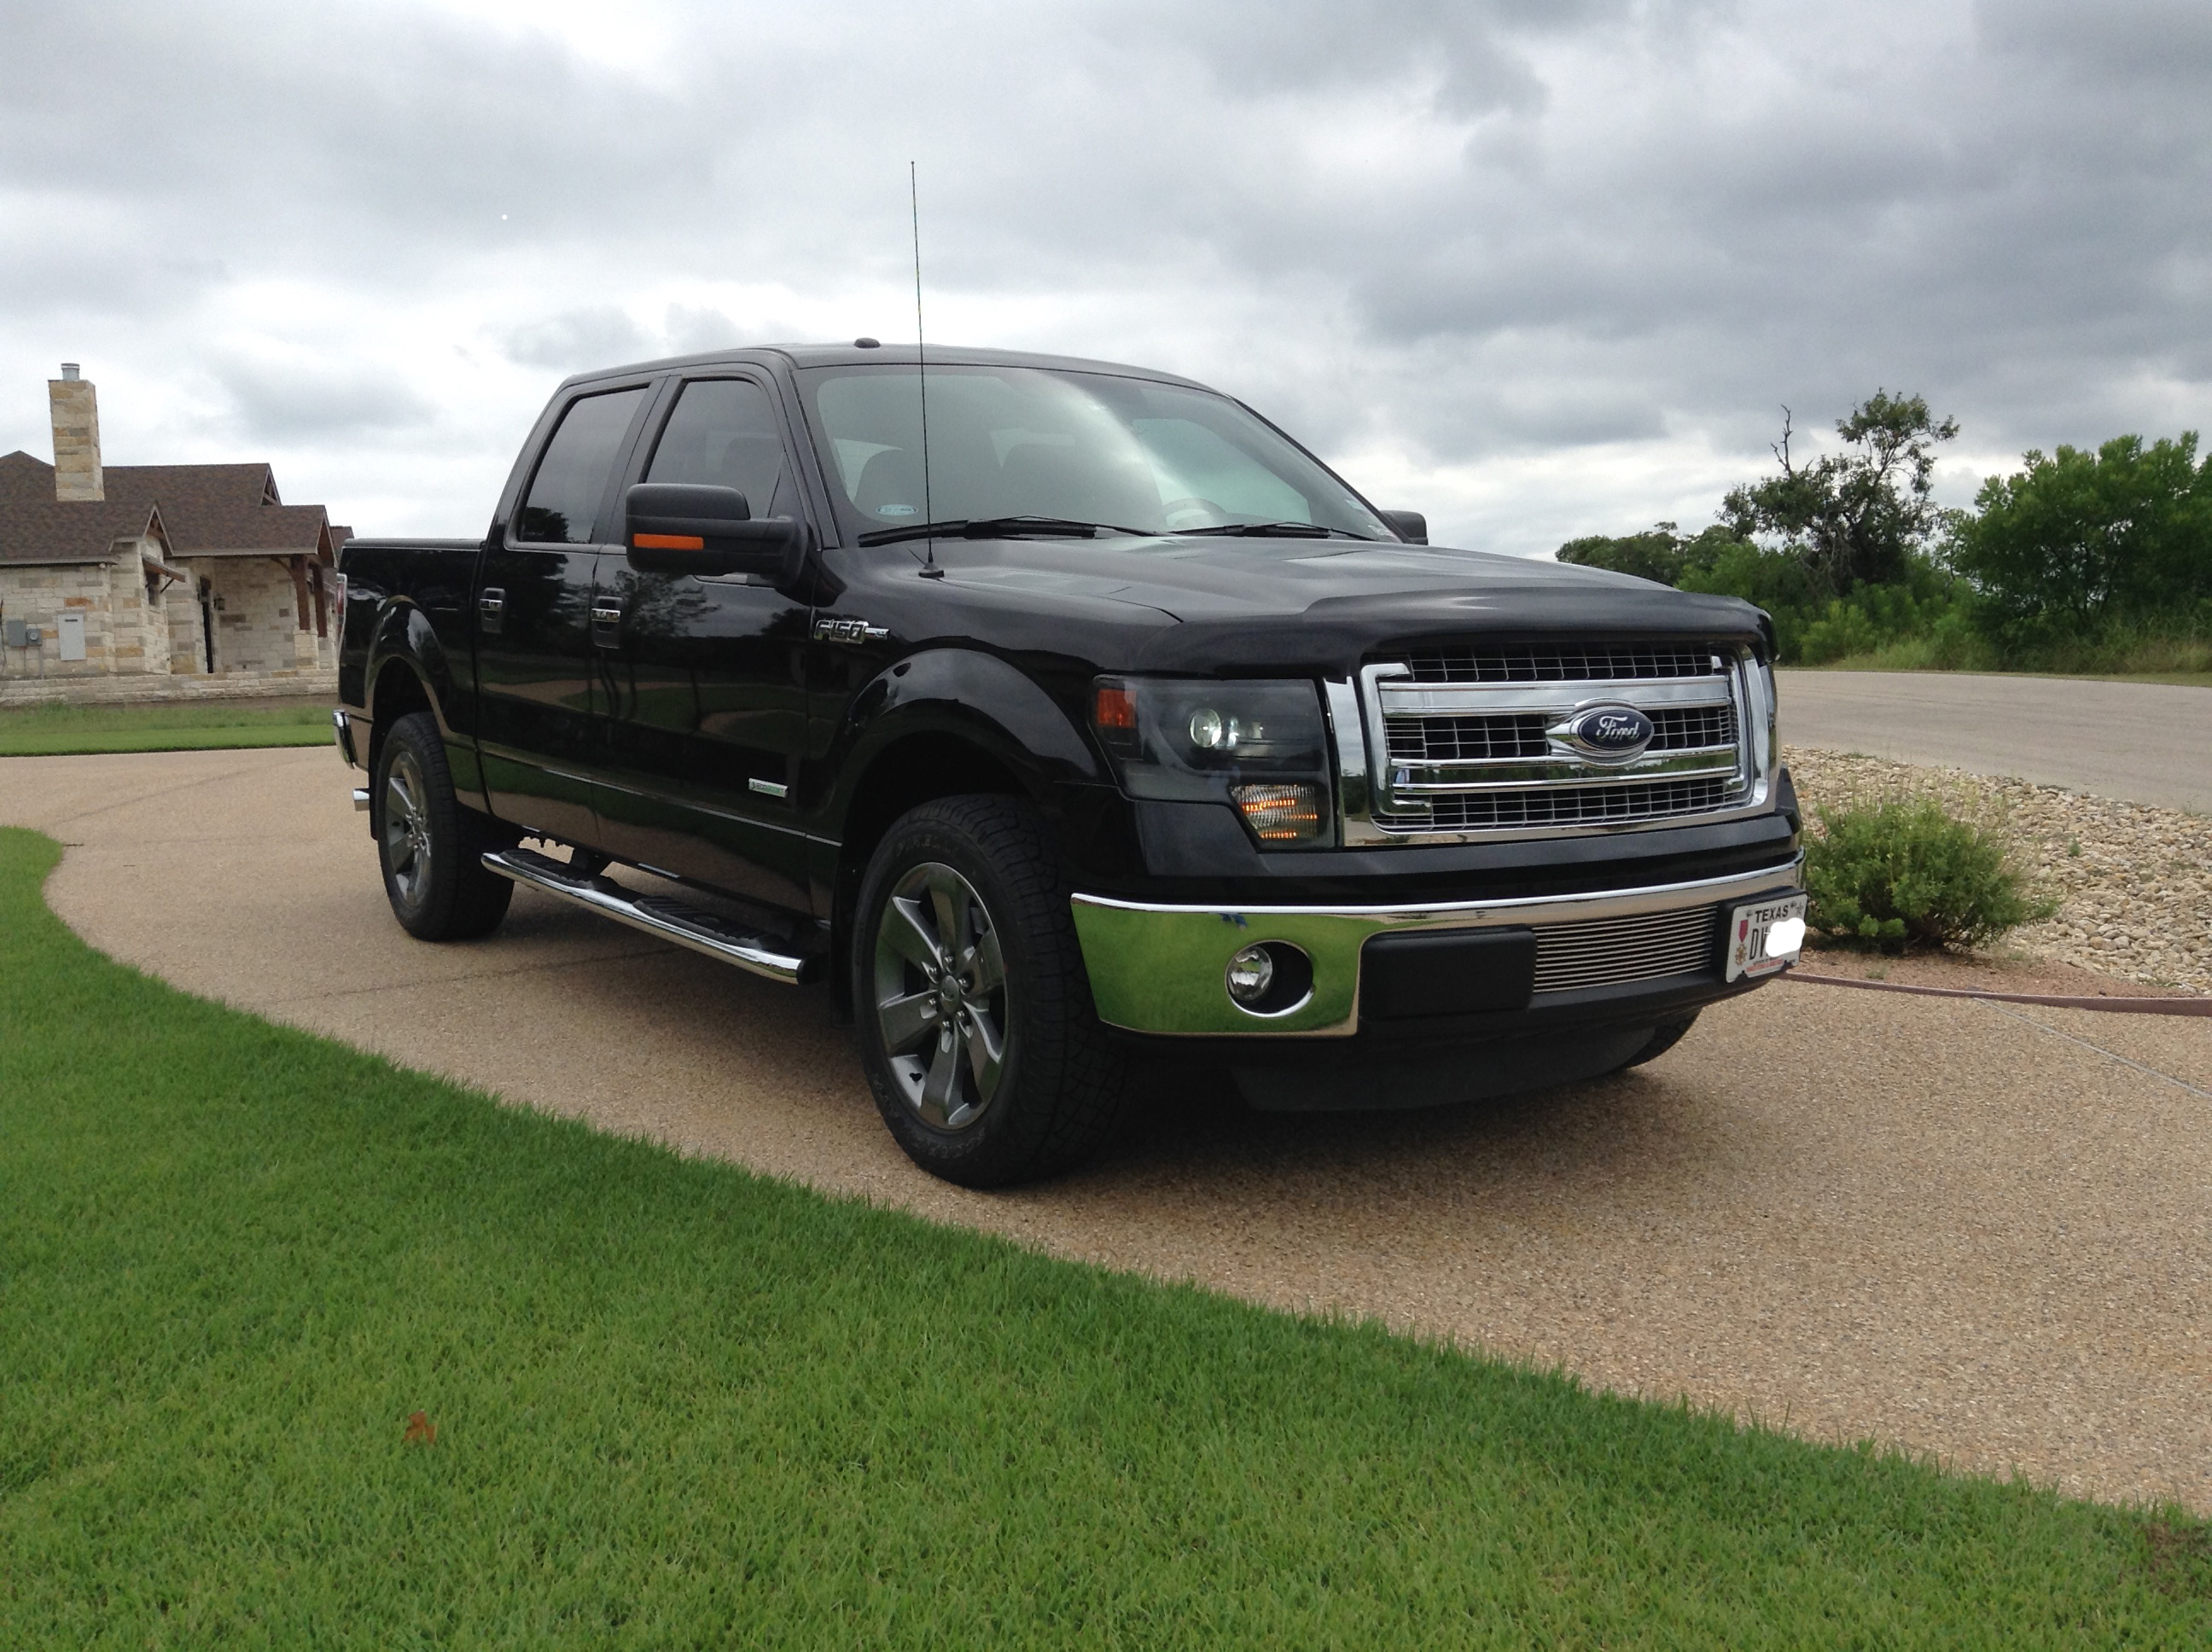 My 2013 XLT with FX4 4x4 wheels and OEM HID D1S upgrade